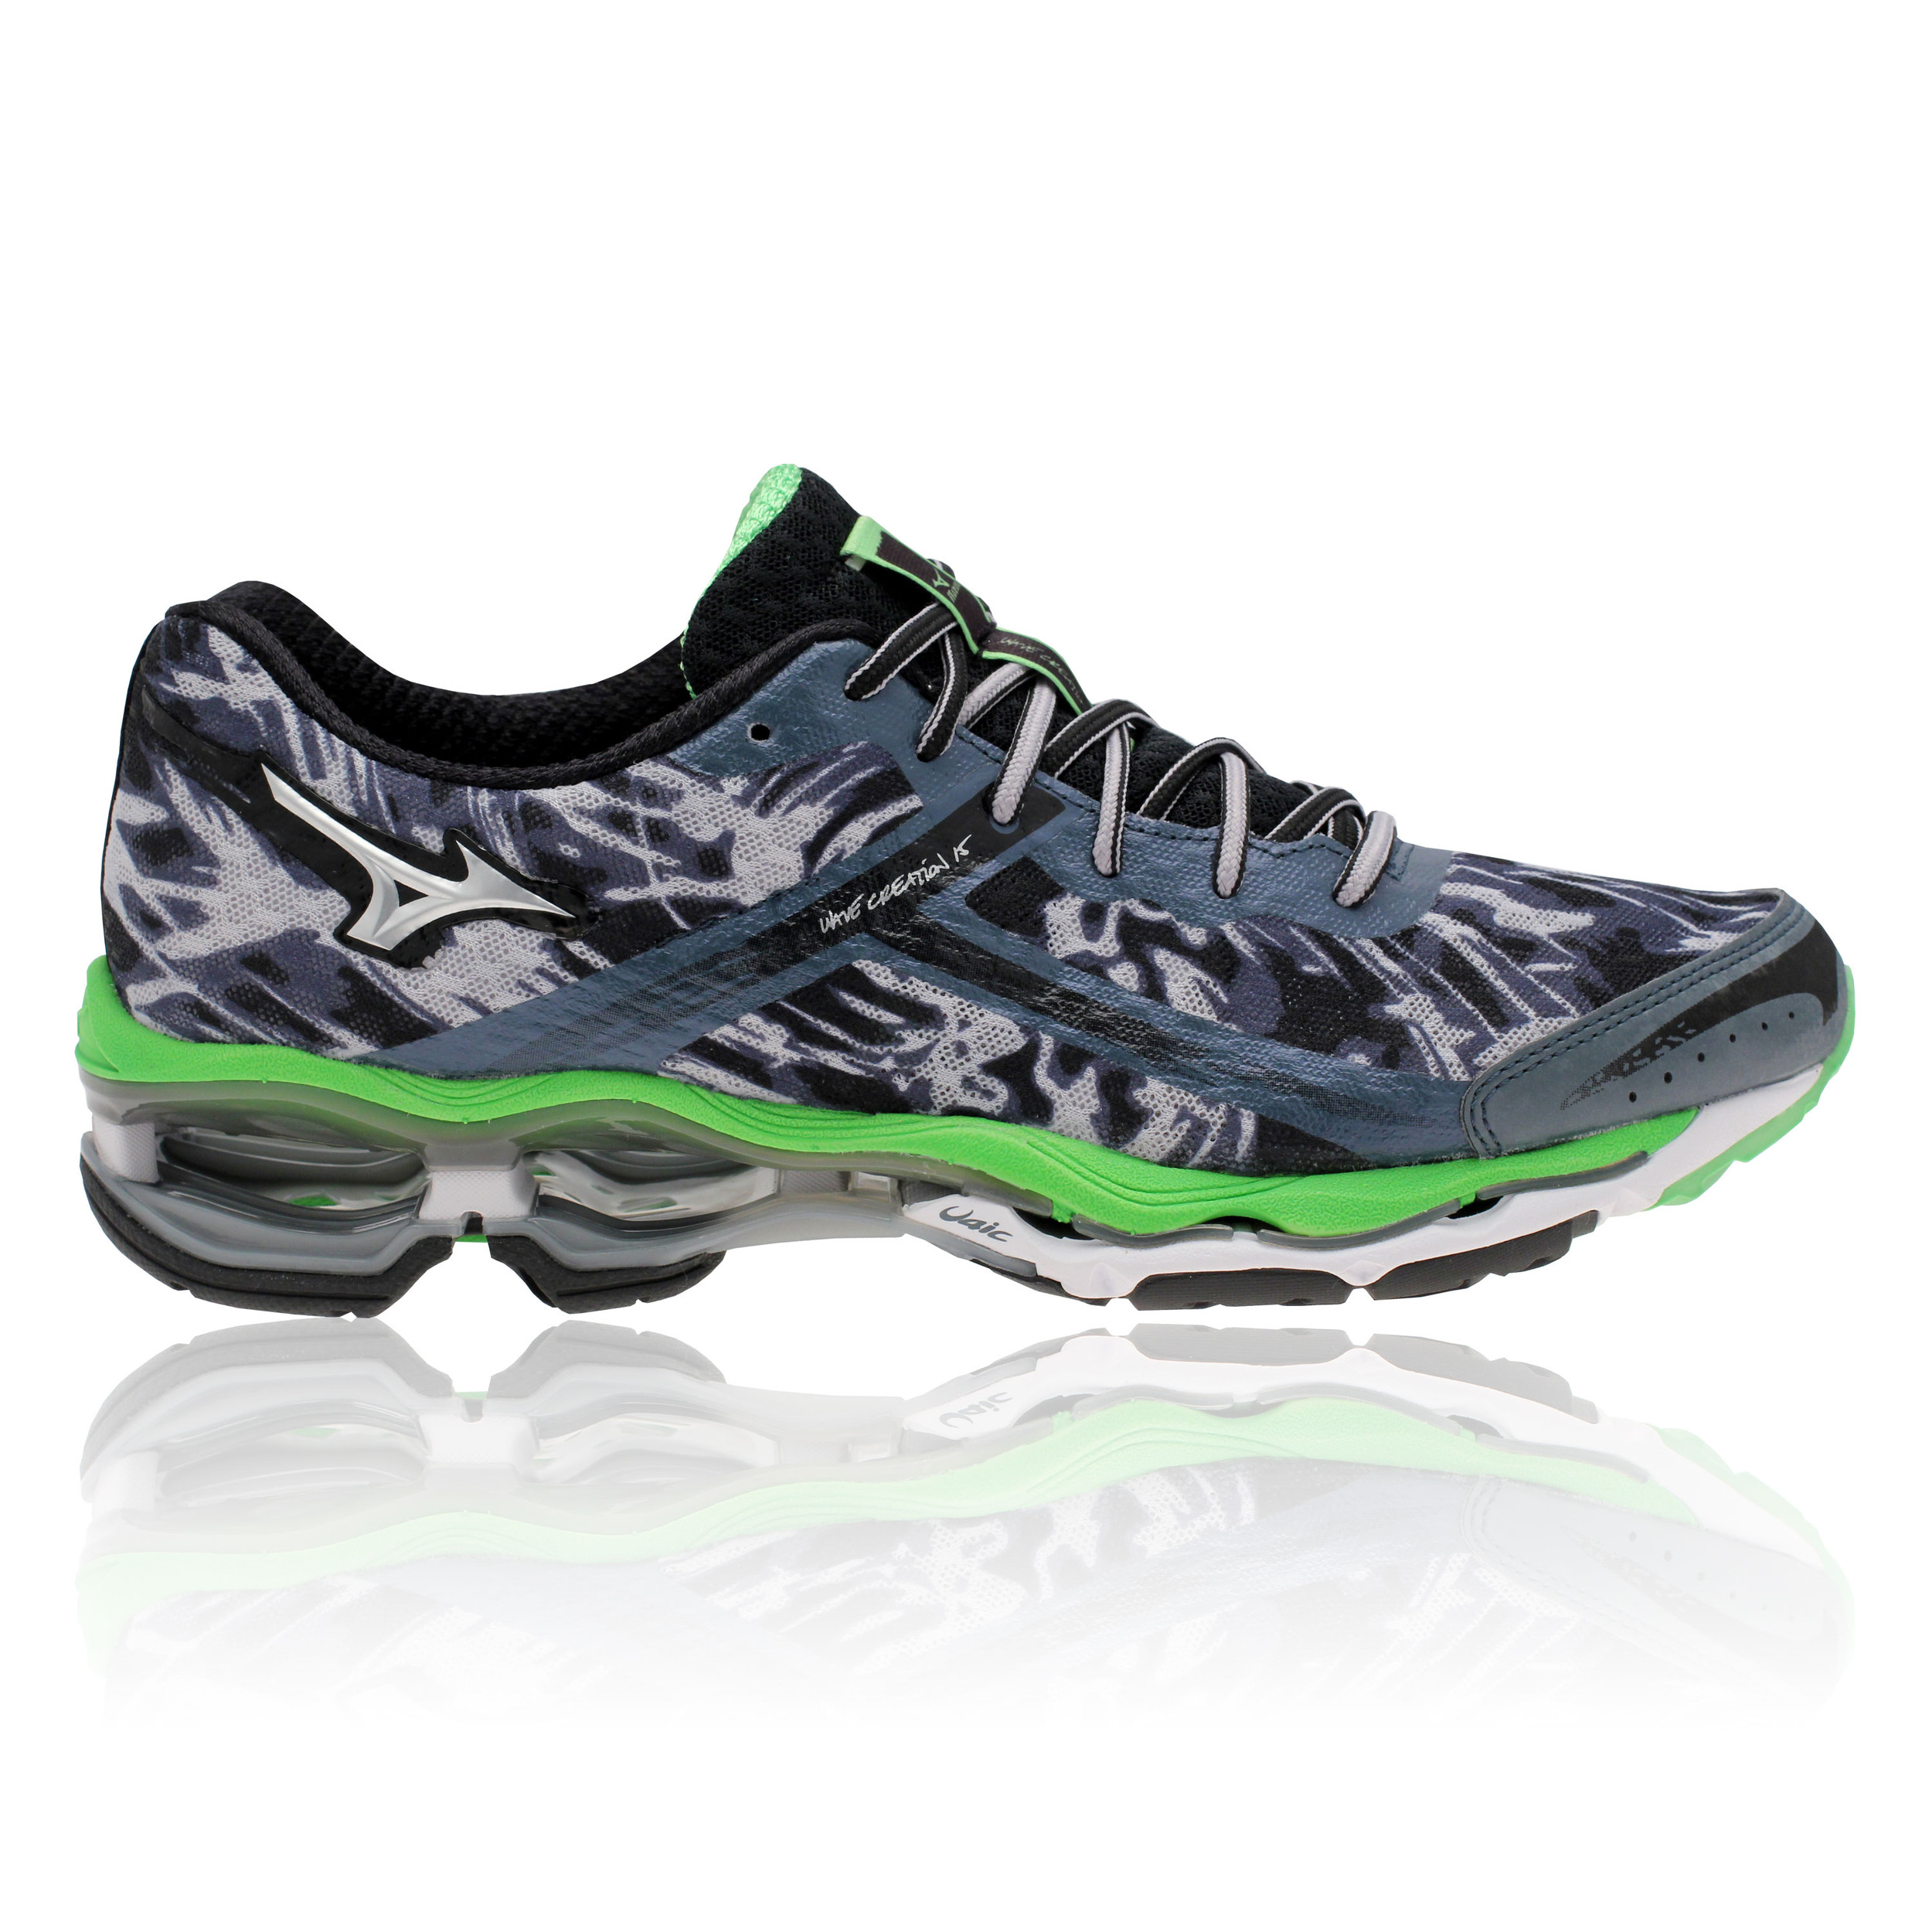 Most Cushioned Running Shoes Ever